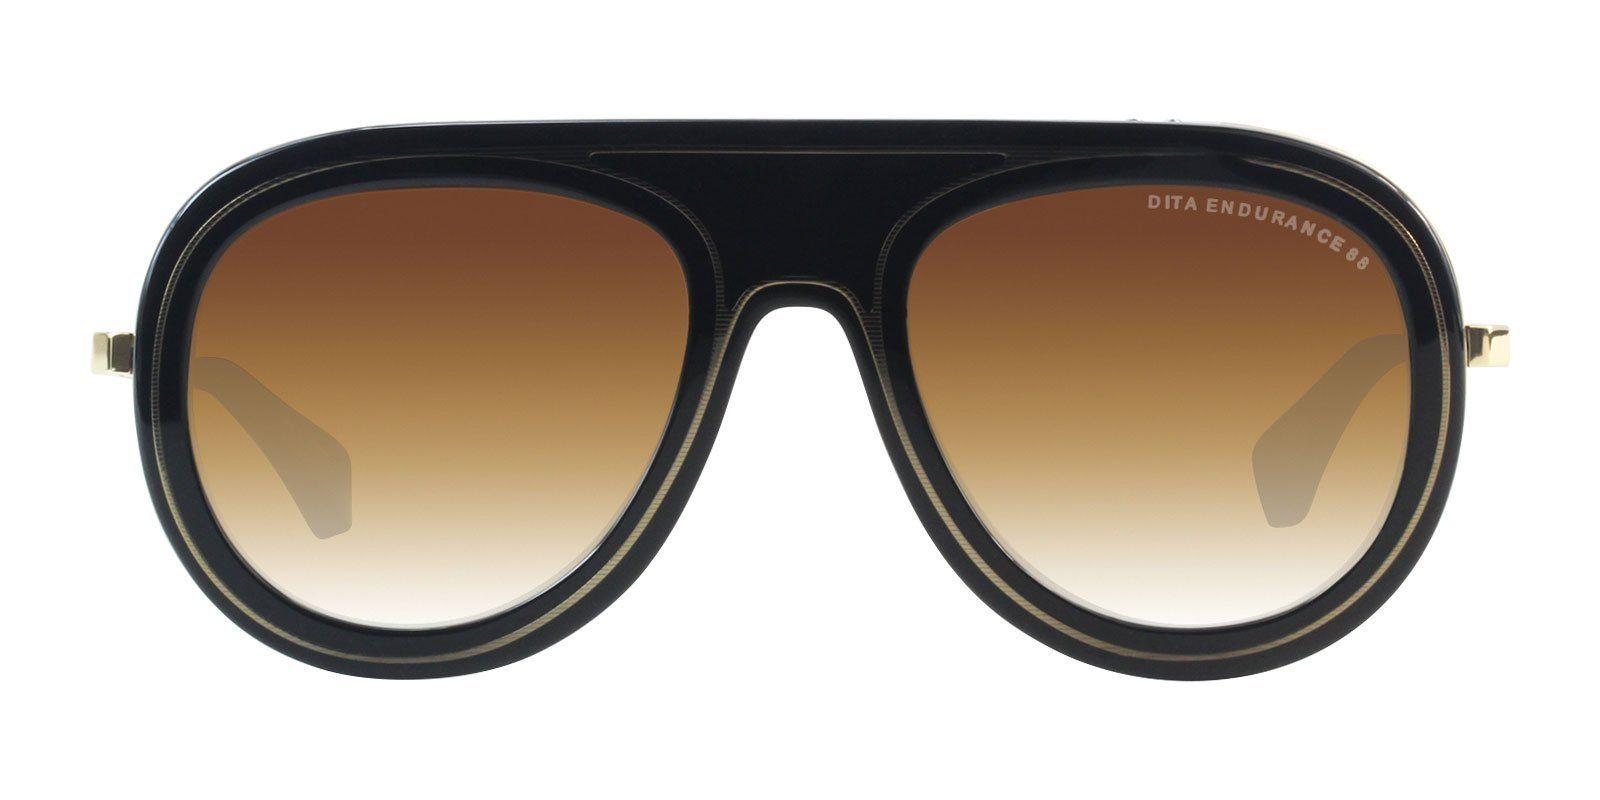 c07a8bec26e5 Dita - Endurance 88 Black Gold - Brown sunglasses in 2018